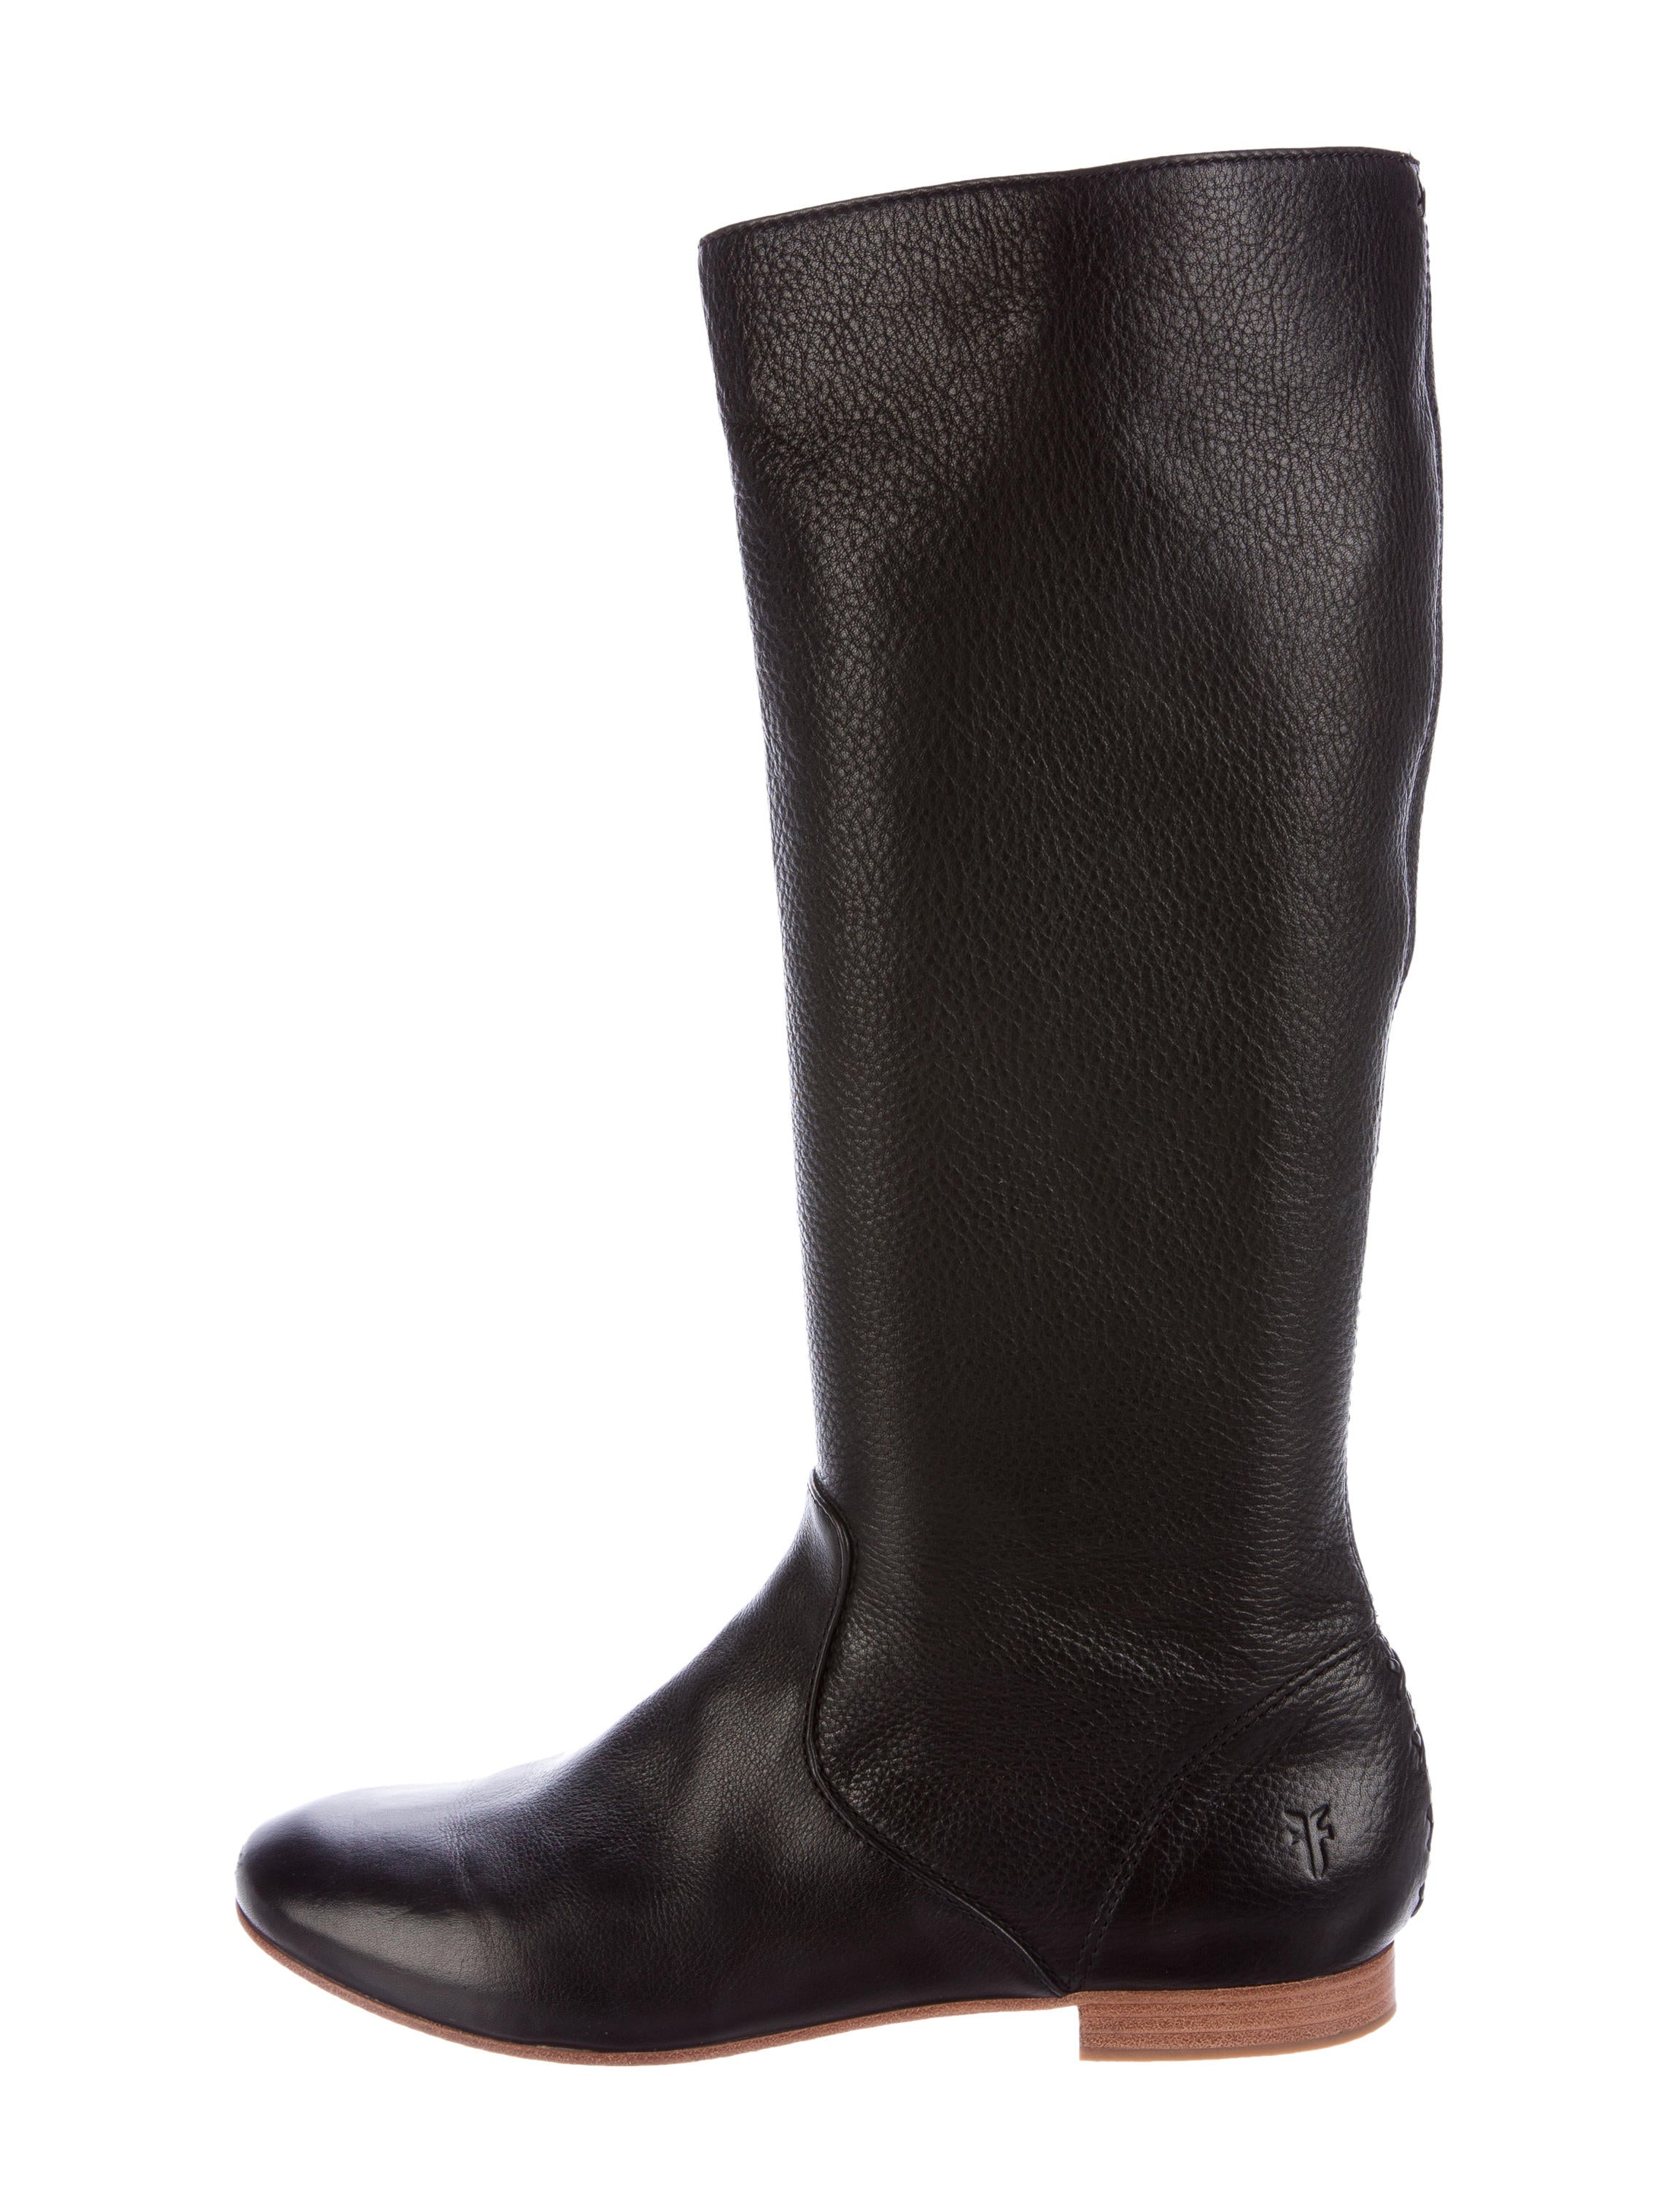 frye leather knee high boots shoes wf821055 the realreal